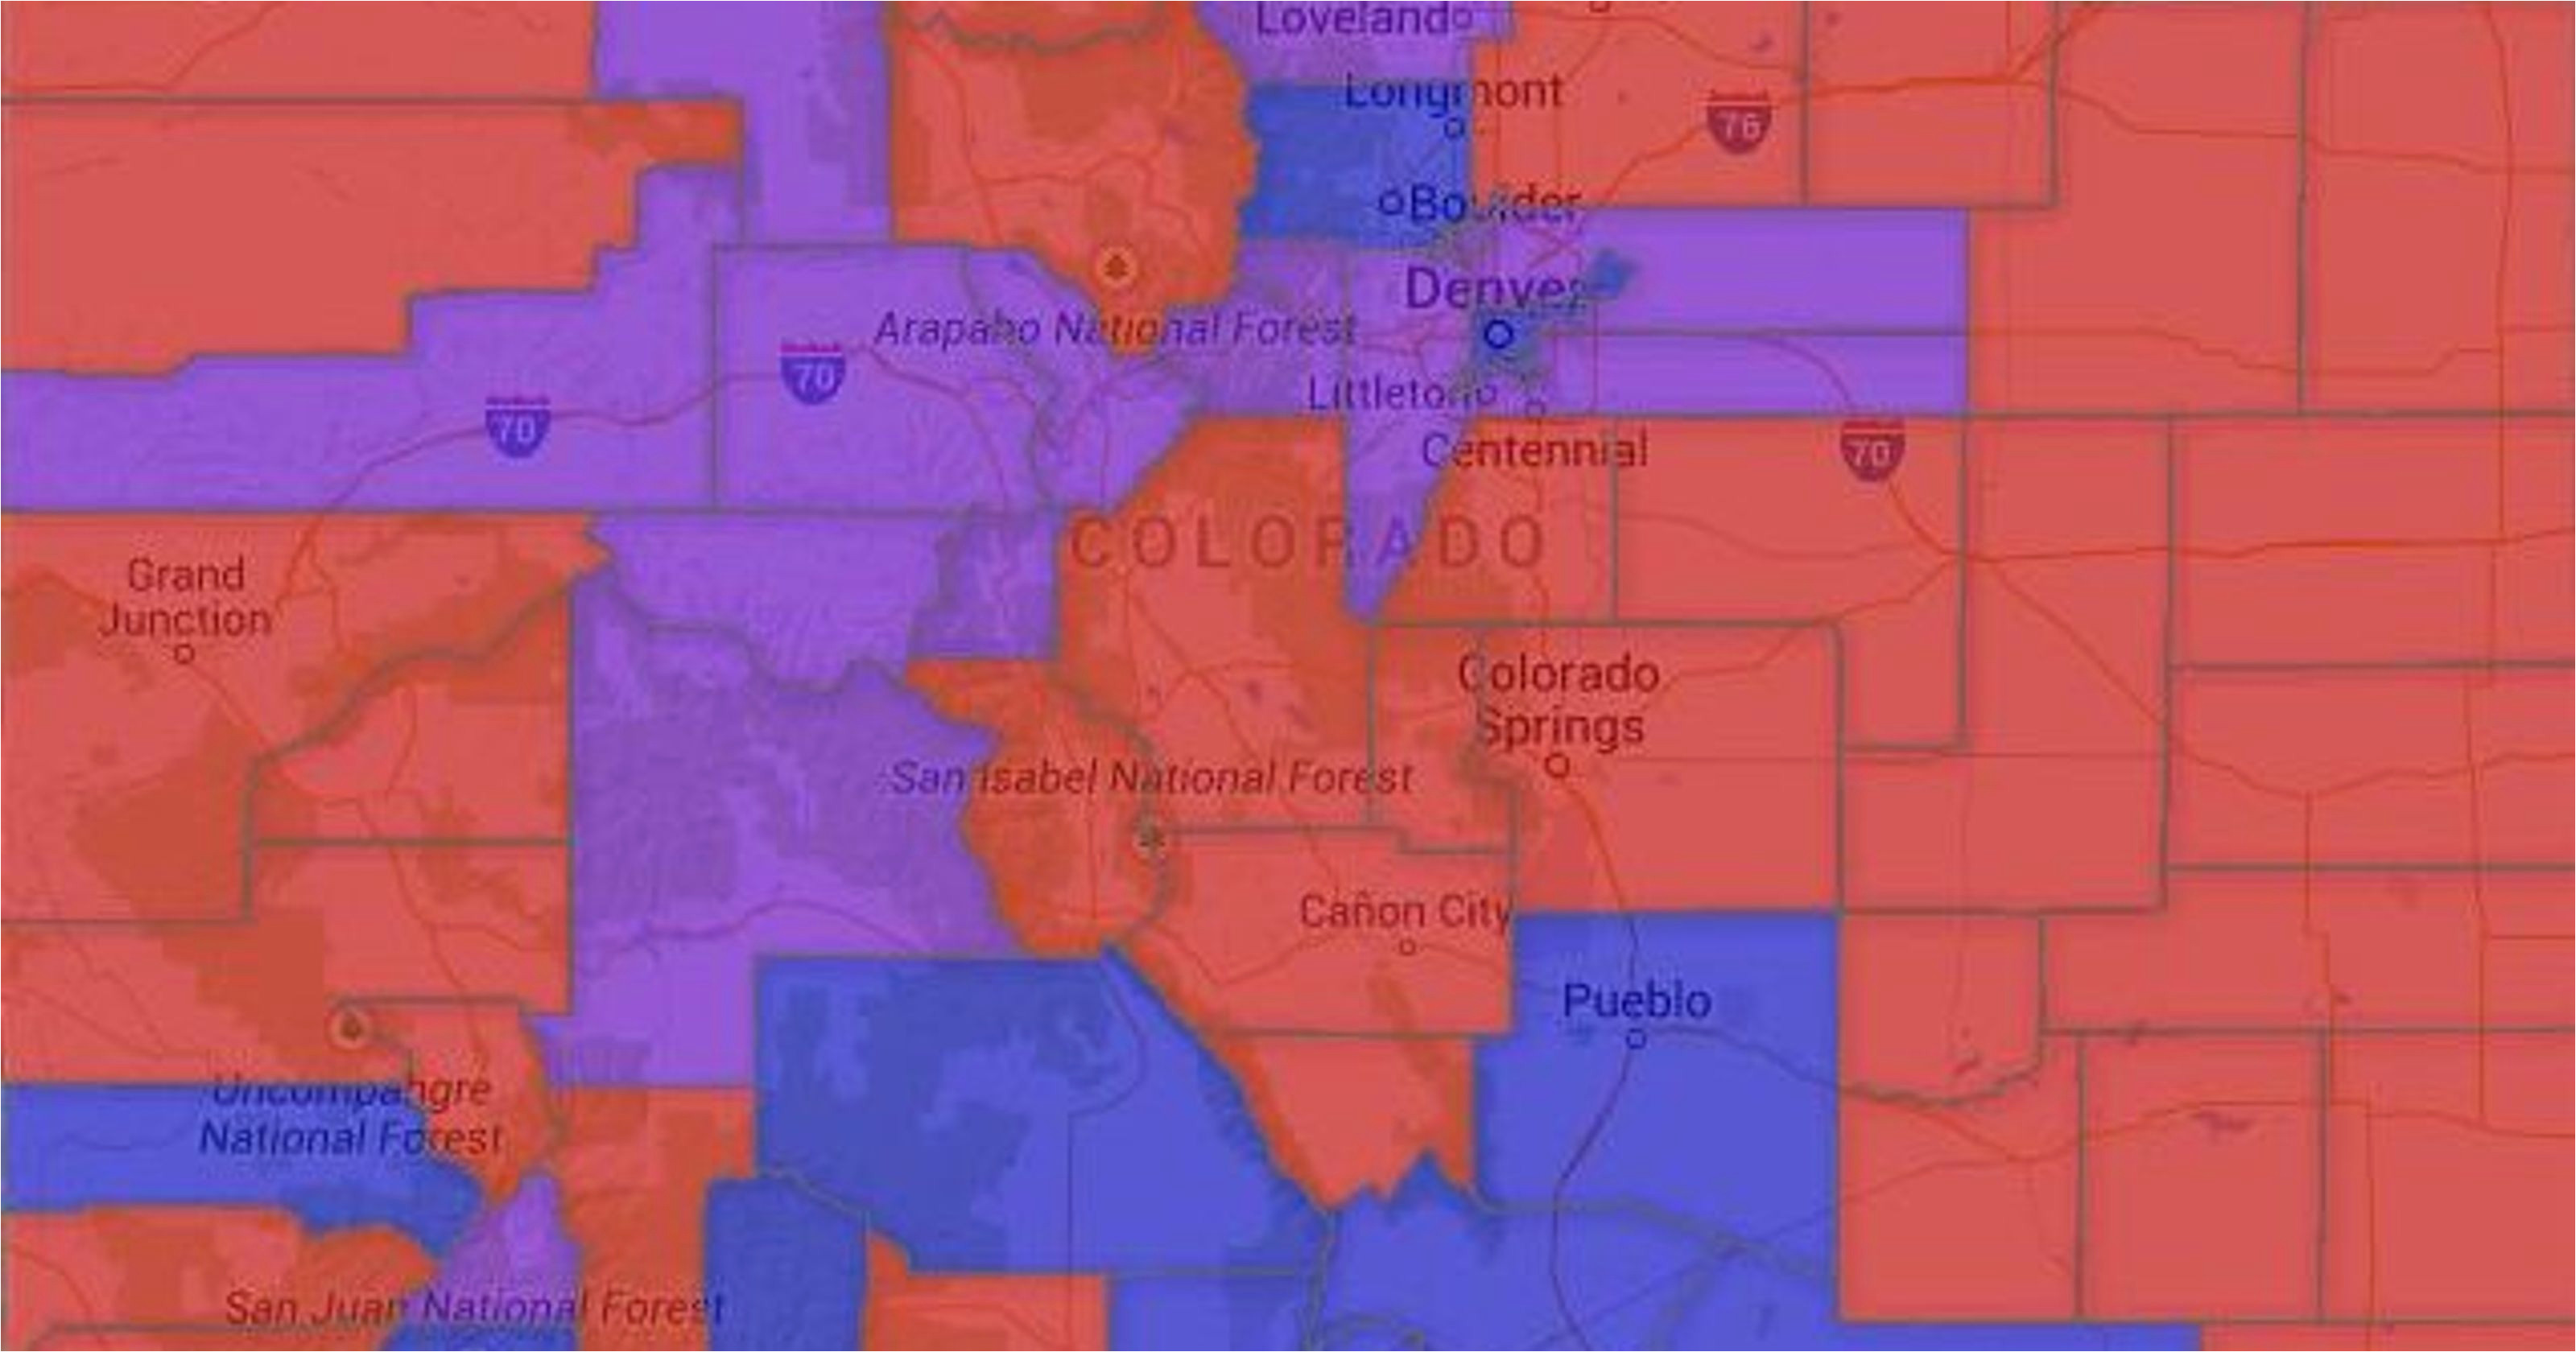 Loveland Colorado Zip Code Map Map Colorado Voter Party Affiliation by County